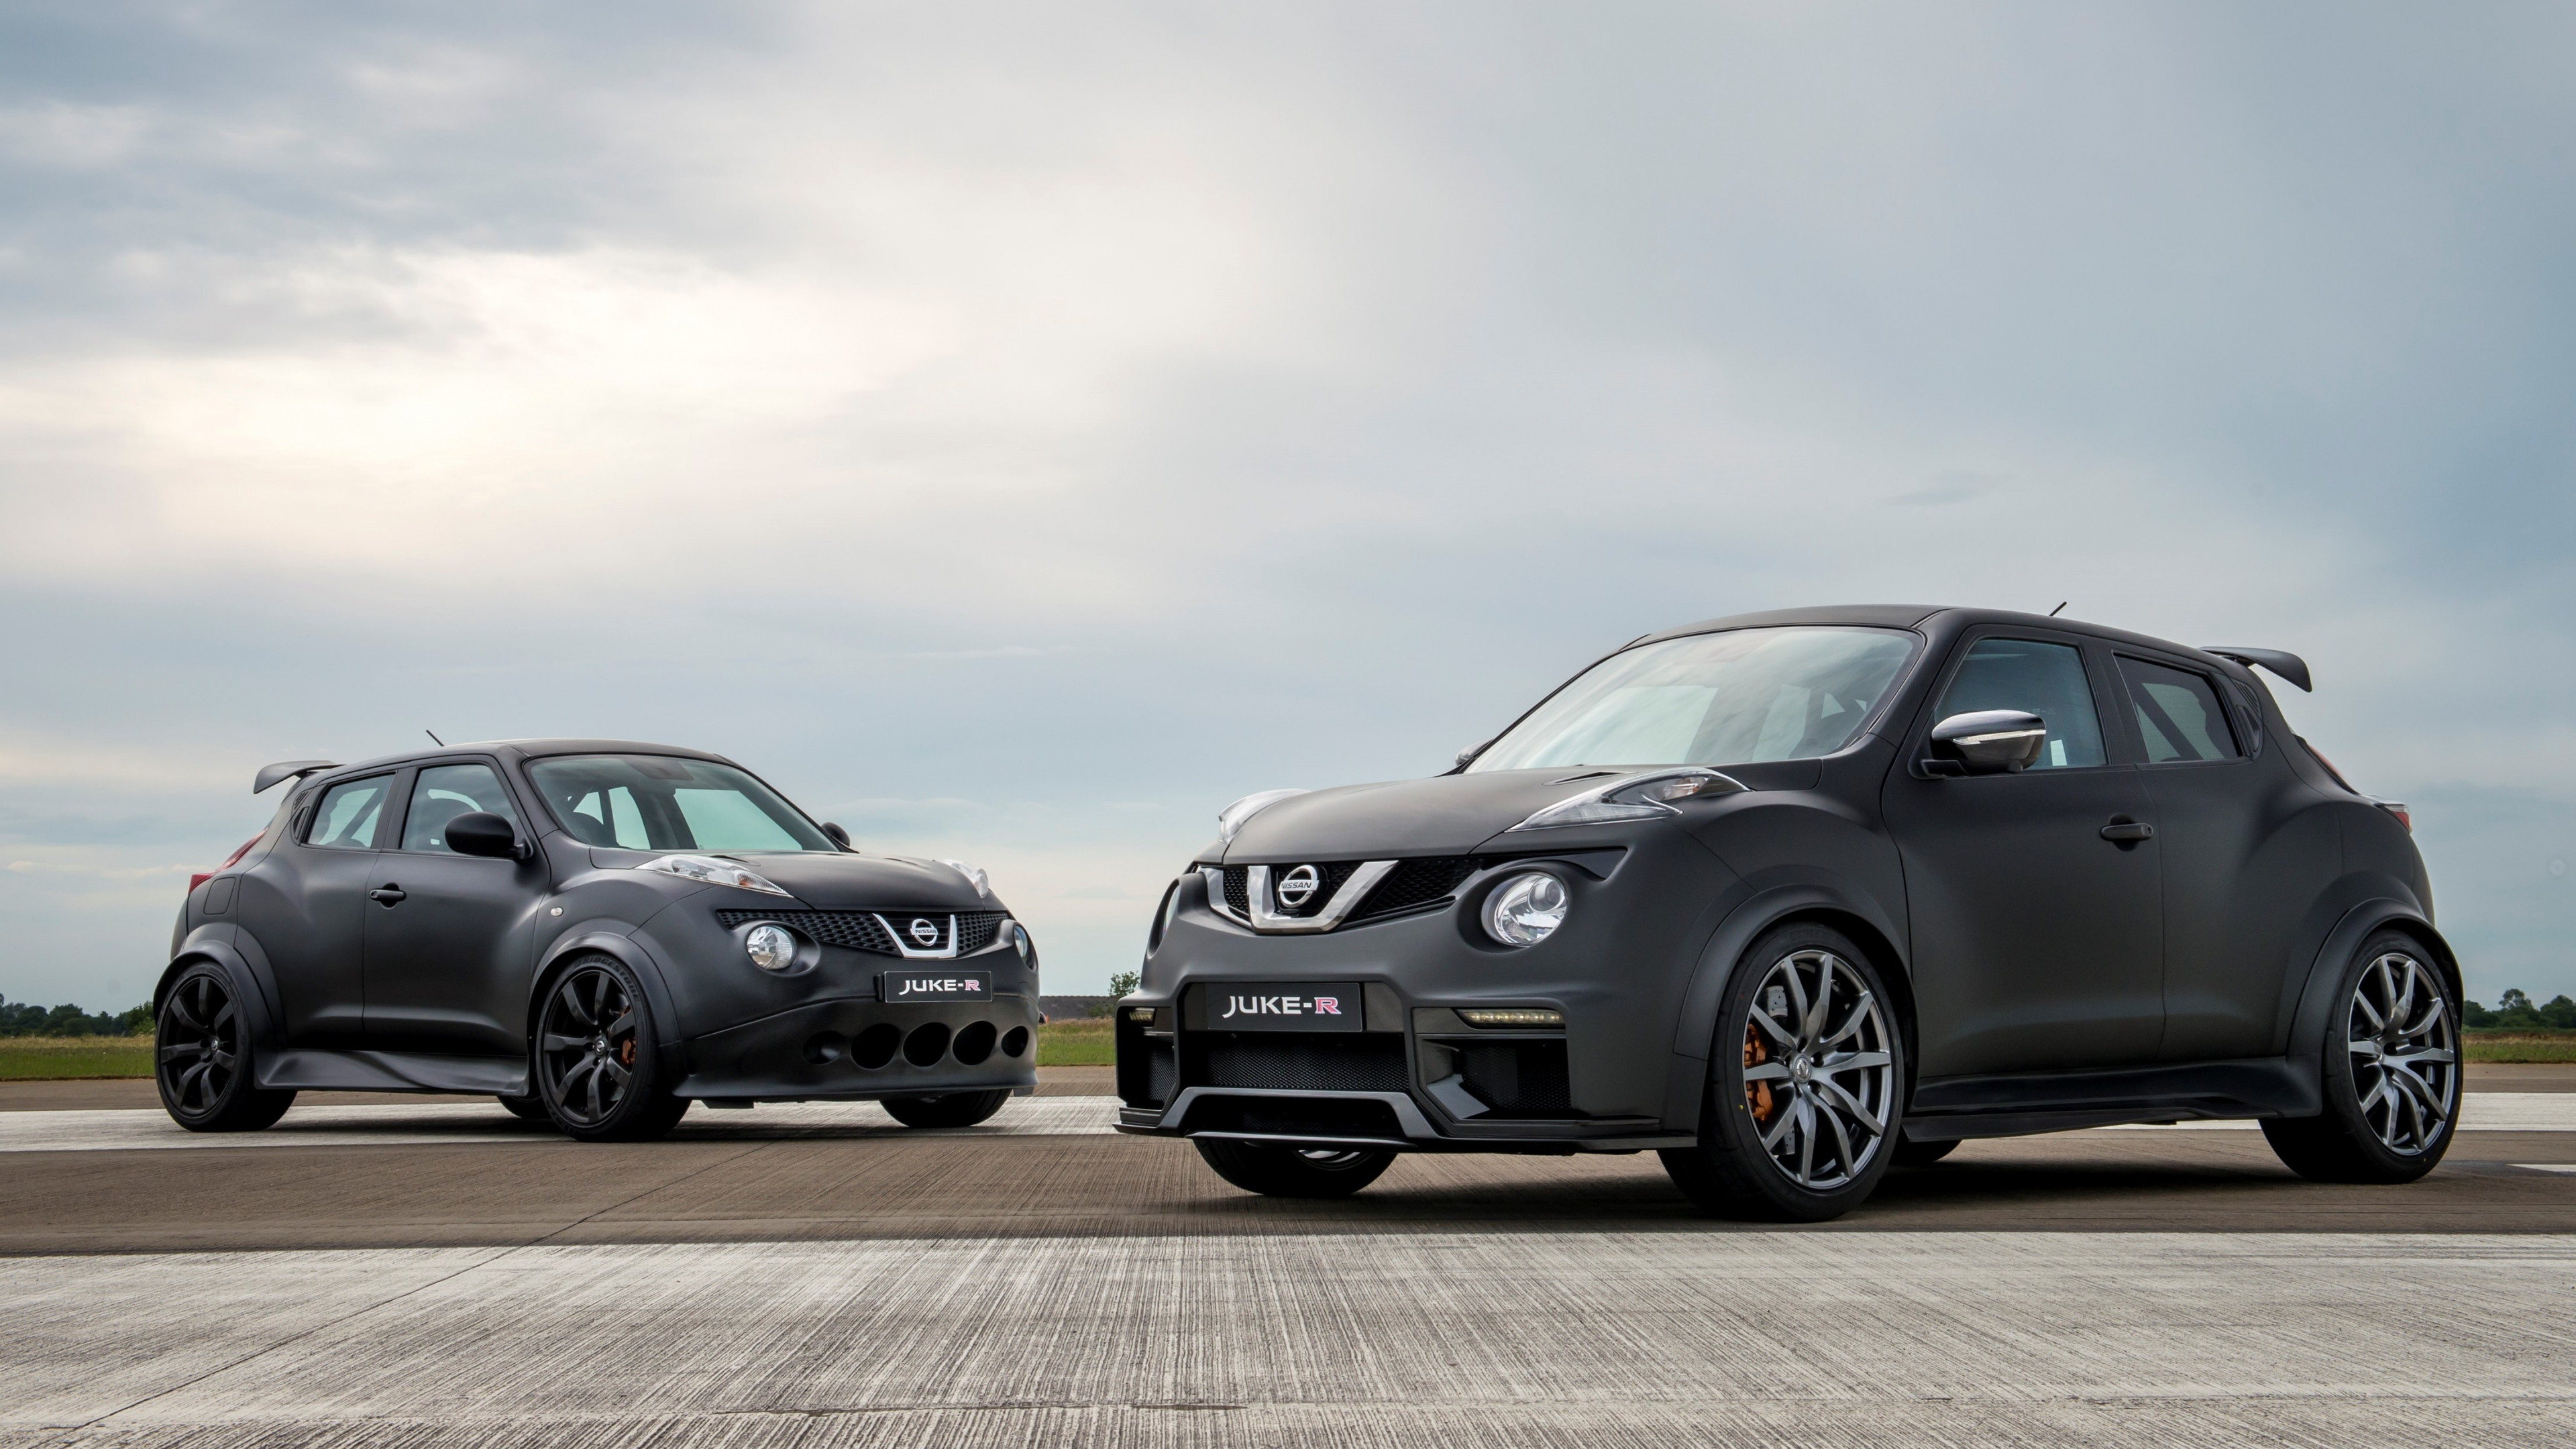 nissan juke r 1539104556 - Nissan Juke R - nissan wallpapers, concept cars wallpapers